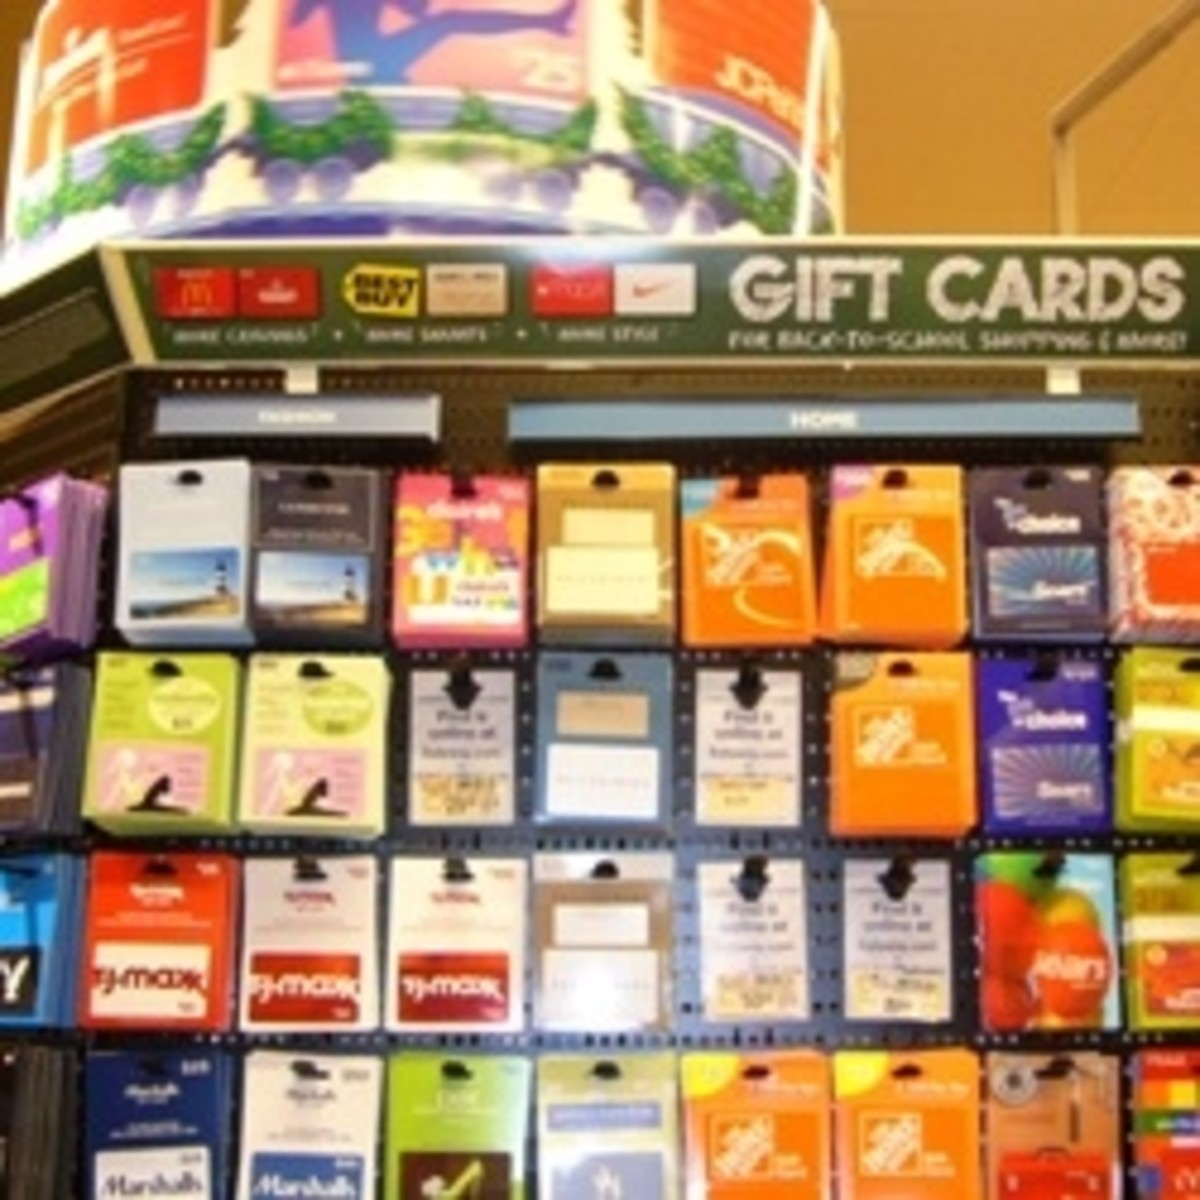 Sell or Trade an Unwanted Gift Card